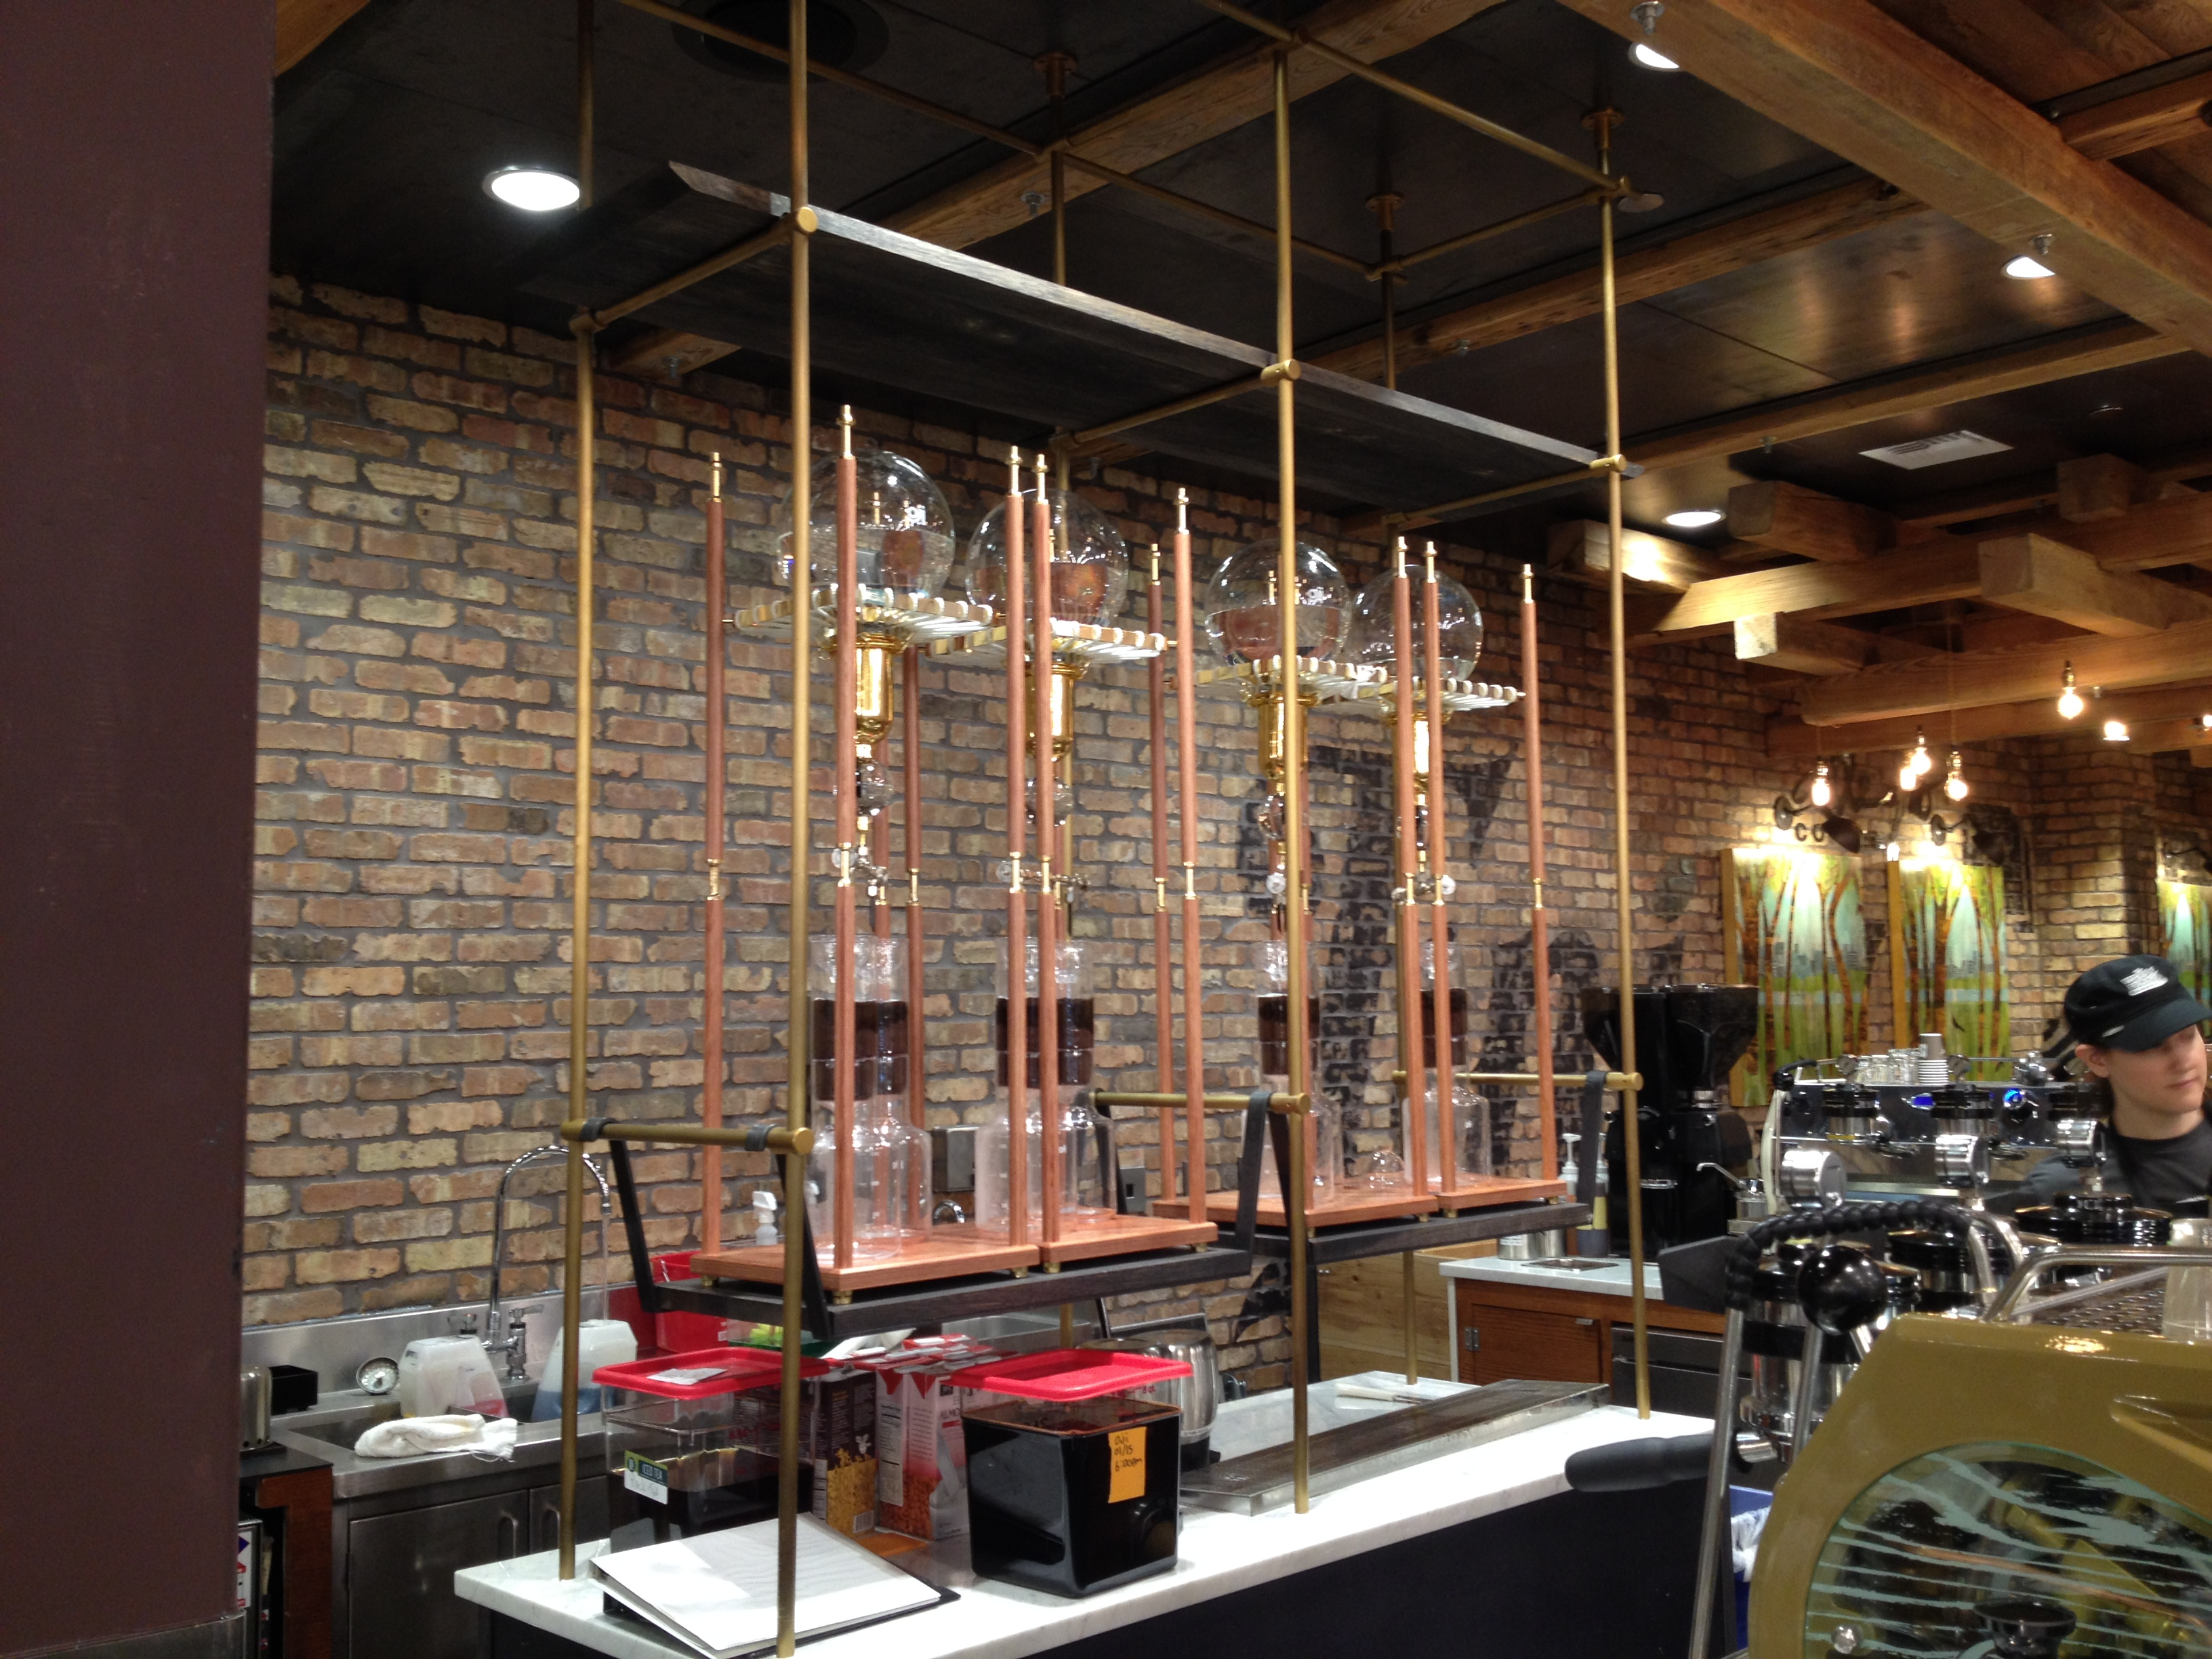 The Whole Foods Domain coffee bar features Japanese Oji water drip ...